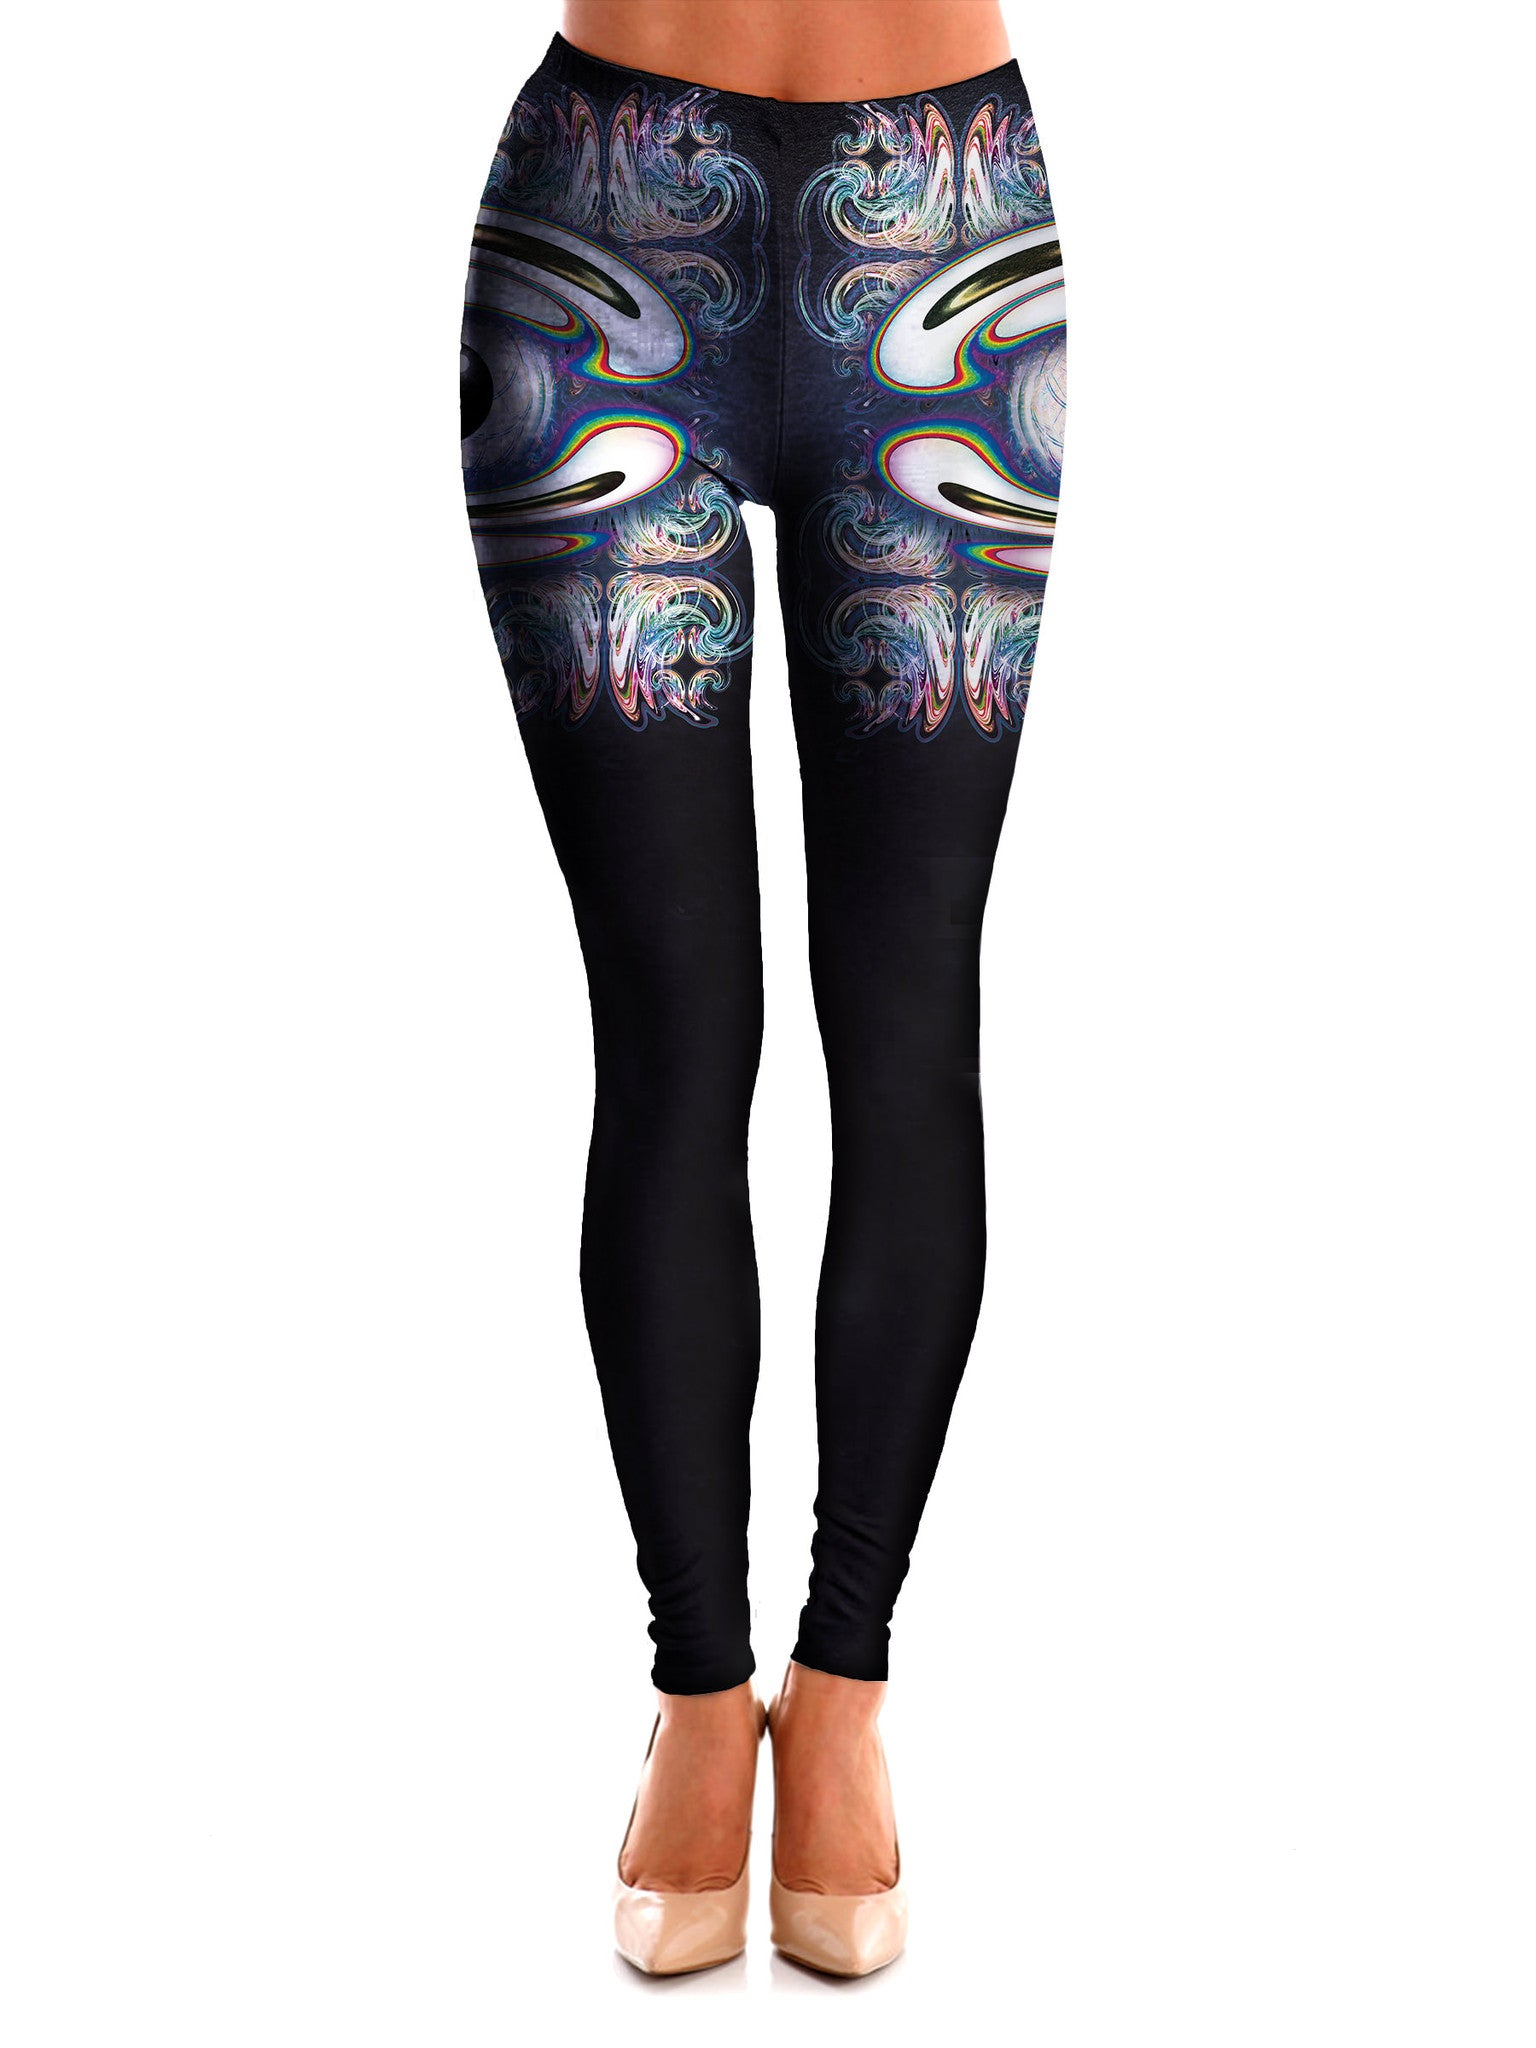 Filagree Freakout Art Leggings - GratefullyDyed - 1